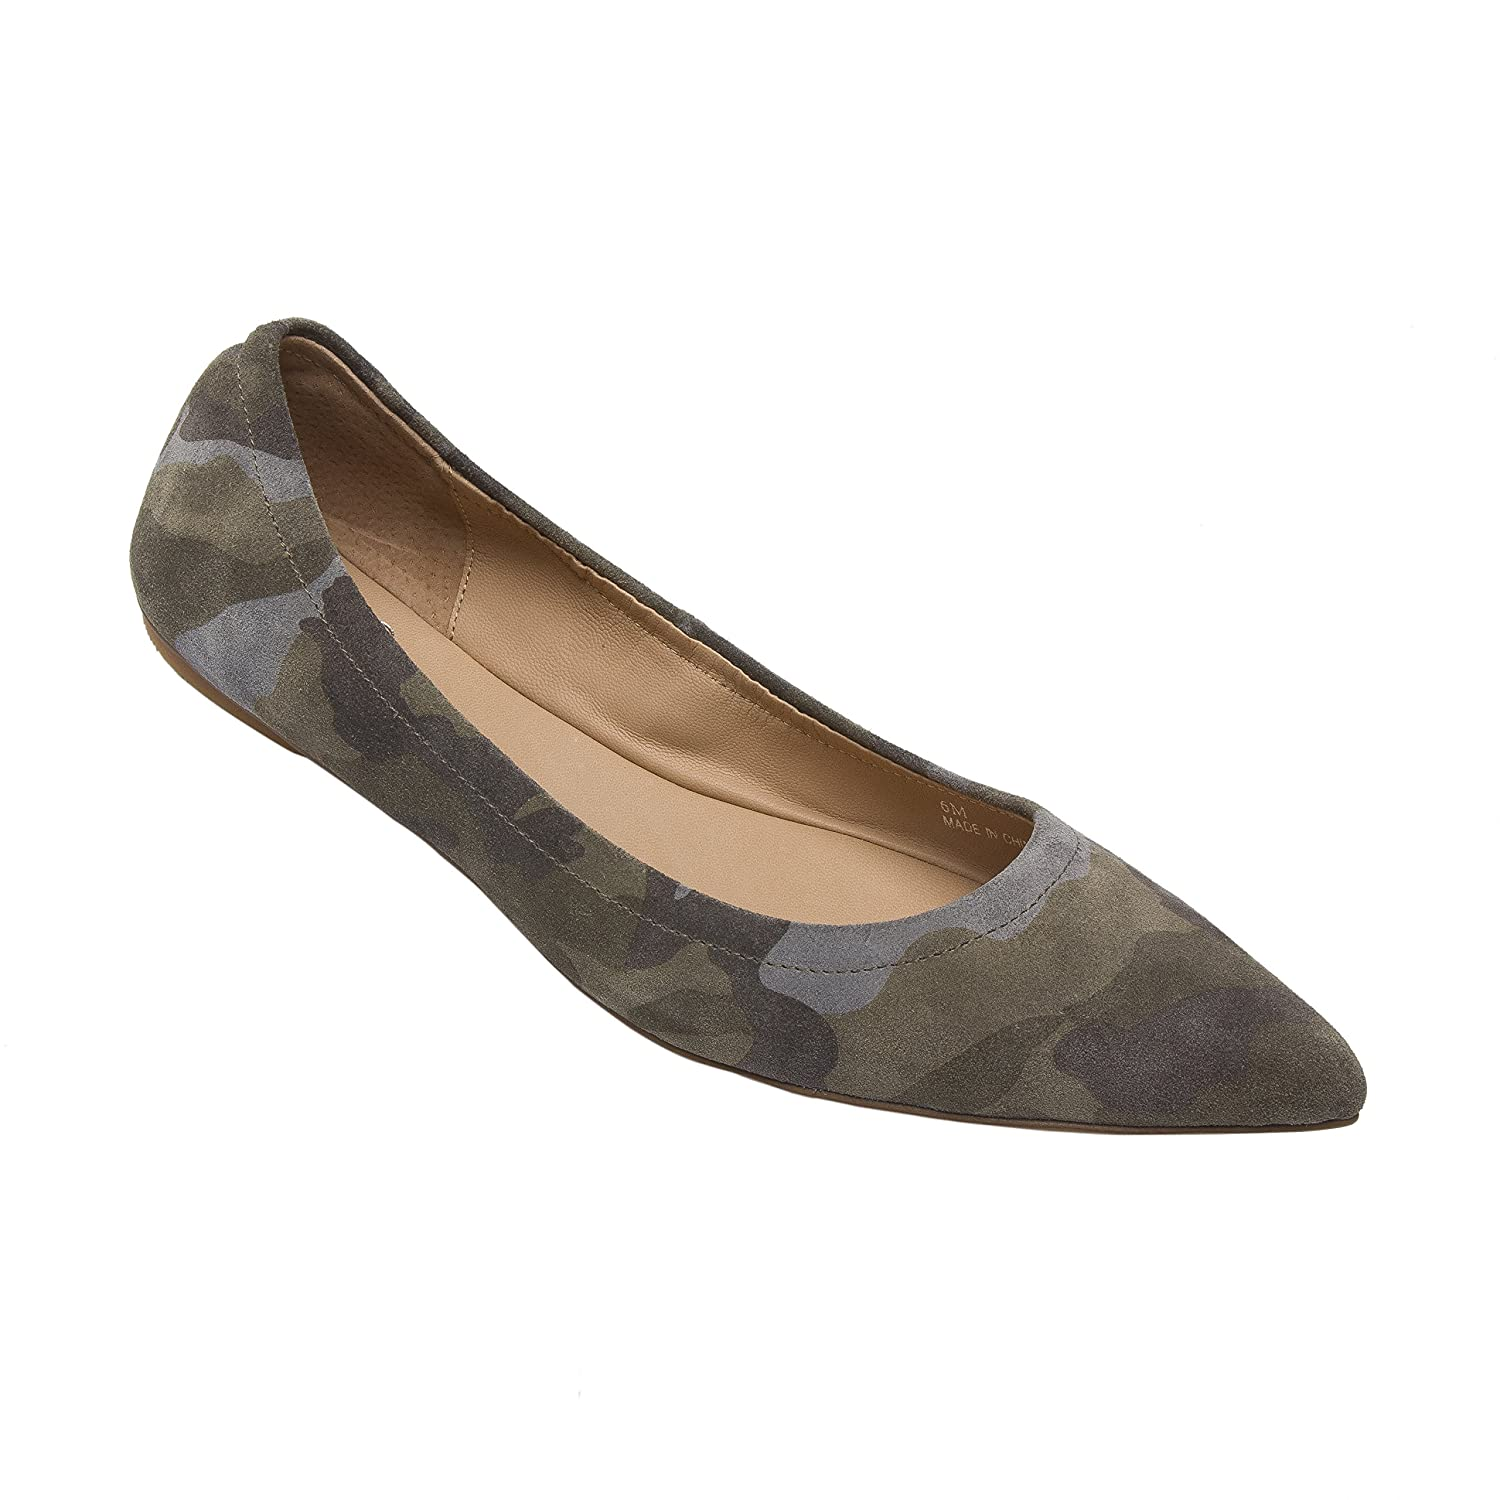 NICO | Women's Pointy Toe Elasticized Leather or Suede Ballet Flat (New Spring) B0778YR756 6.5 M US|Camouflage Print Suede